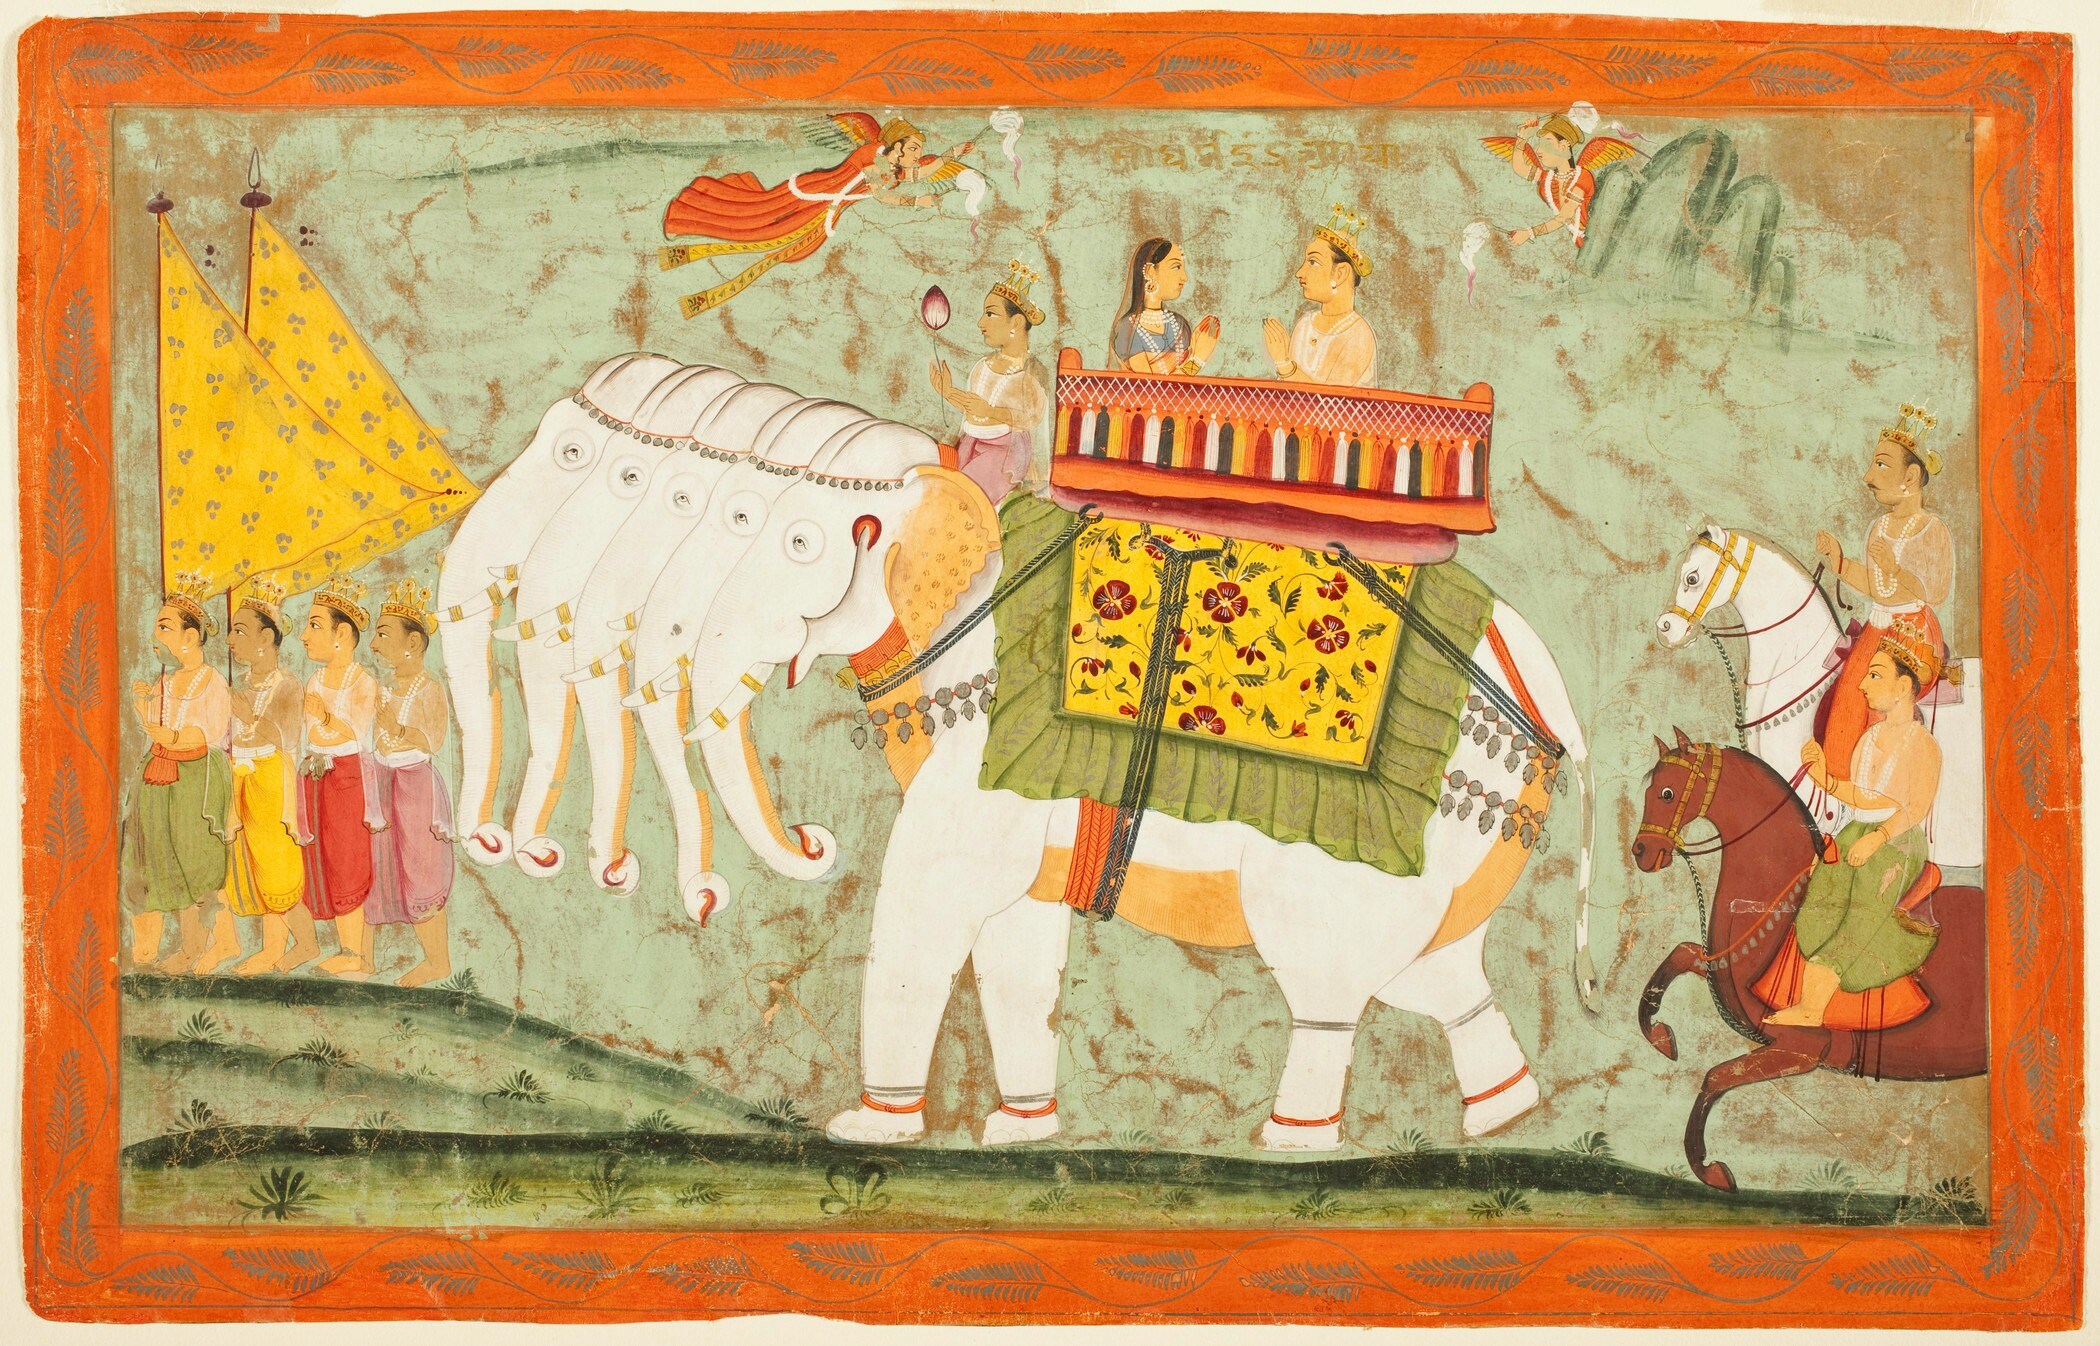 Lord Indra riding atop the Elephant Airavata, who is spotless white, and has five trunks and ten tusks.